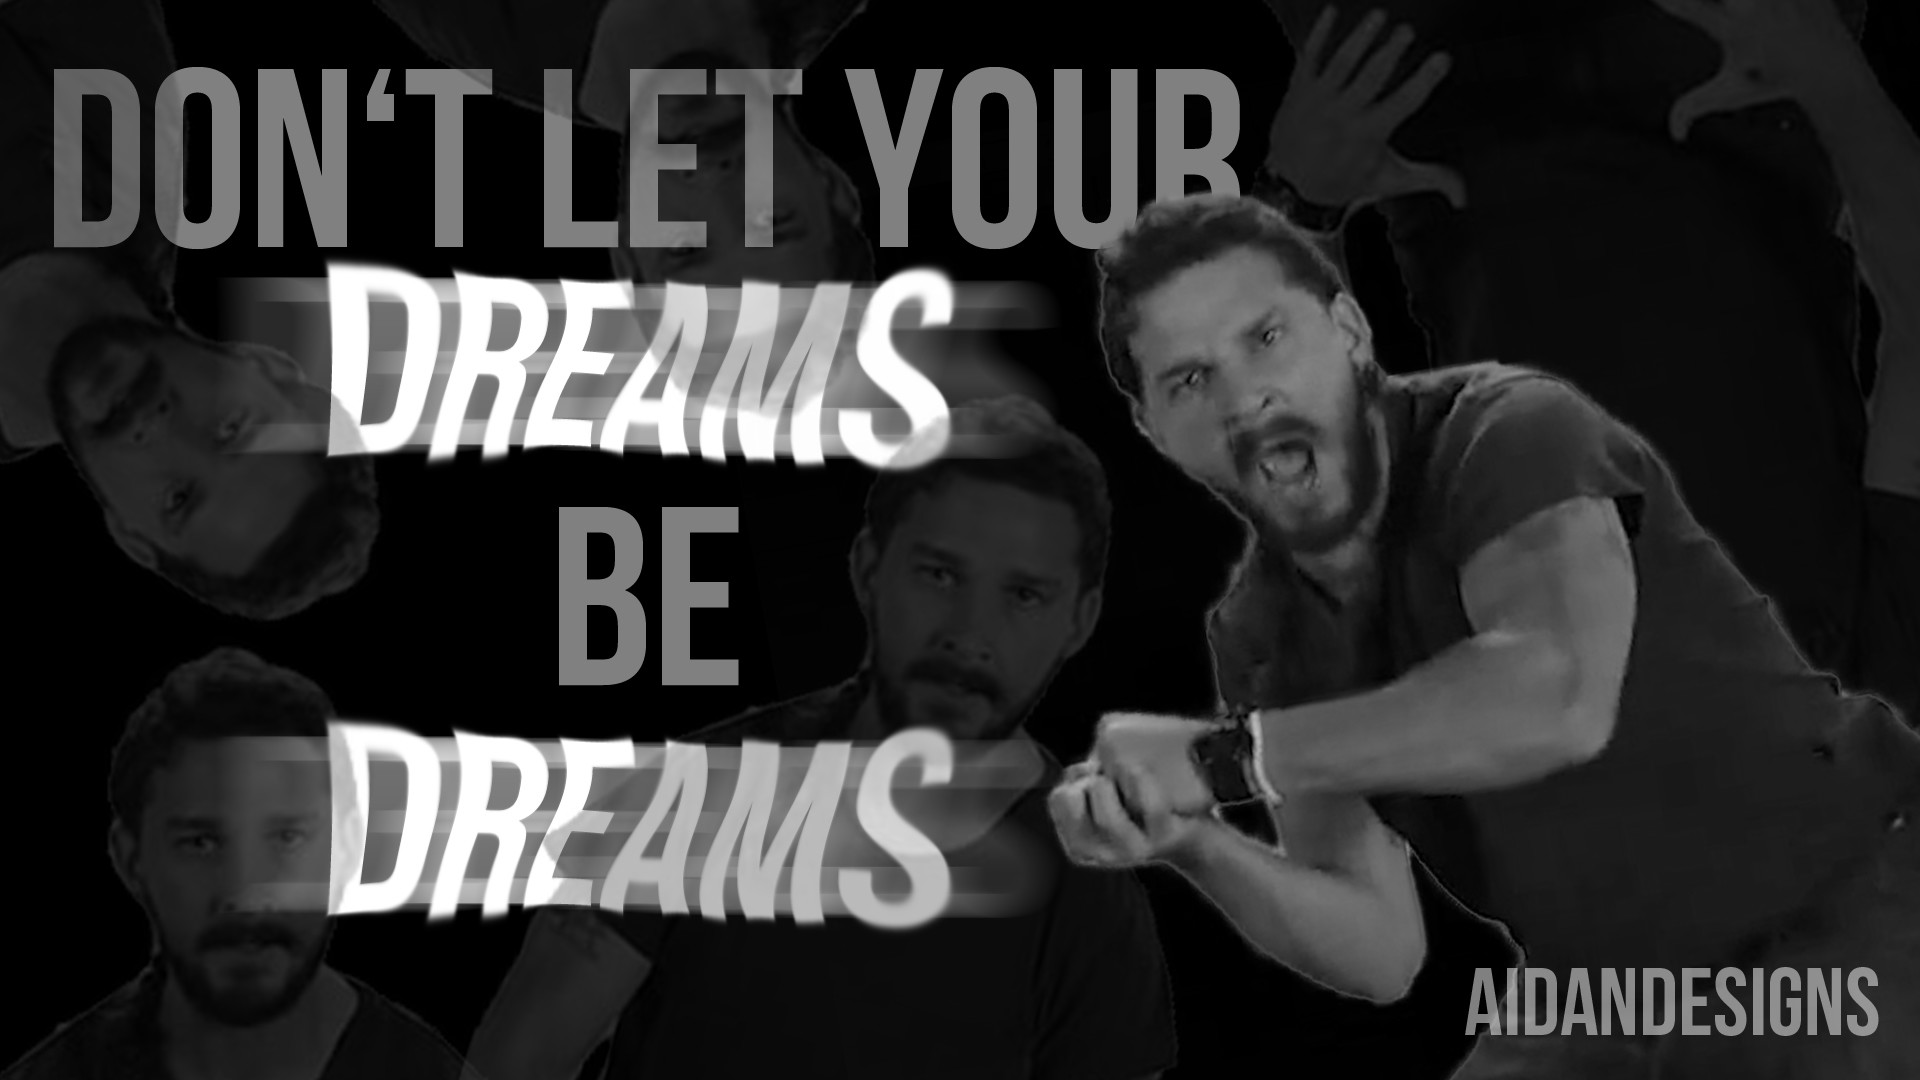 … A Motivational Poster Featuring Shia LaBeouf by AidanDesigns